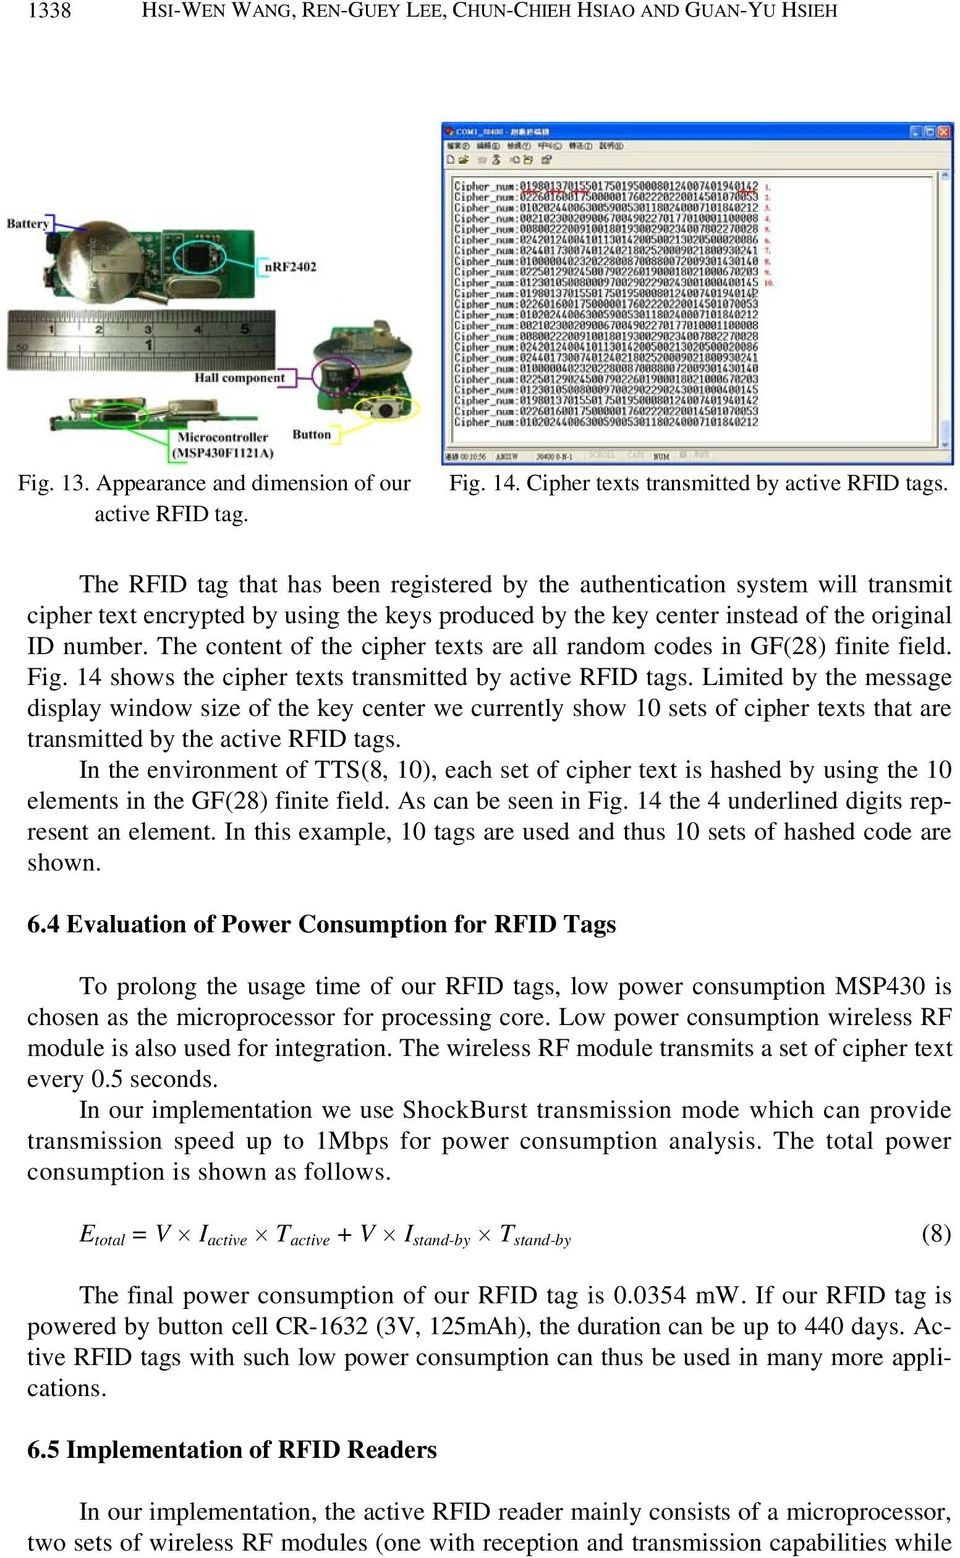 The content of the cipher texts are all random codes in GF(28) finite field. Fig. 14 shows the cipher texts transmitted by active RFID tags.